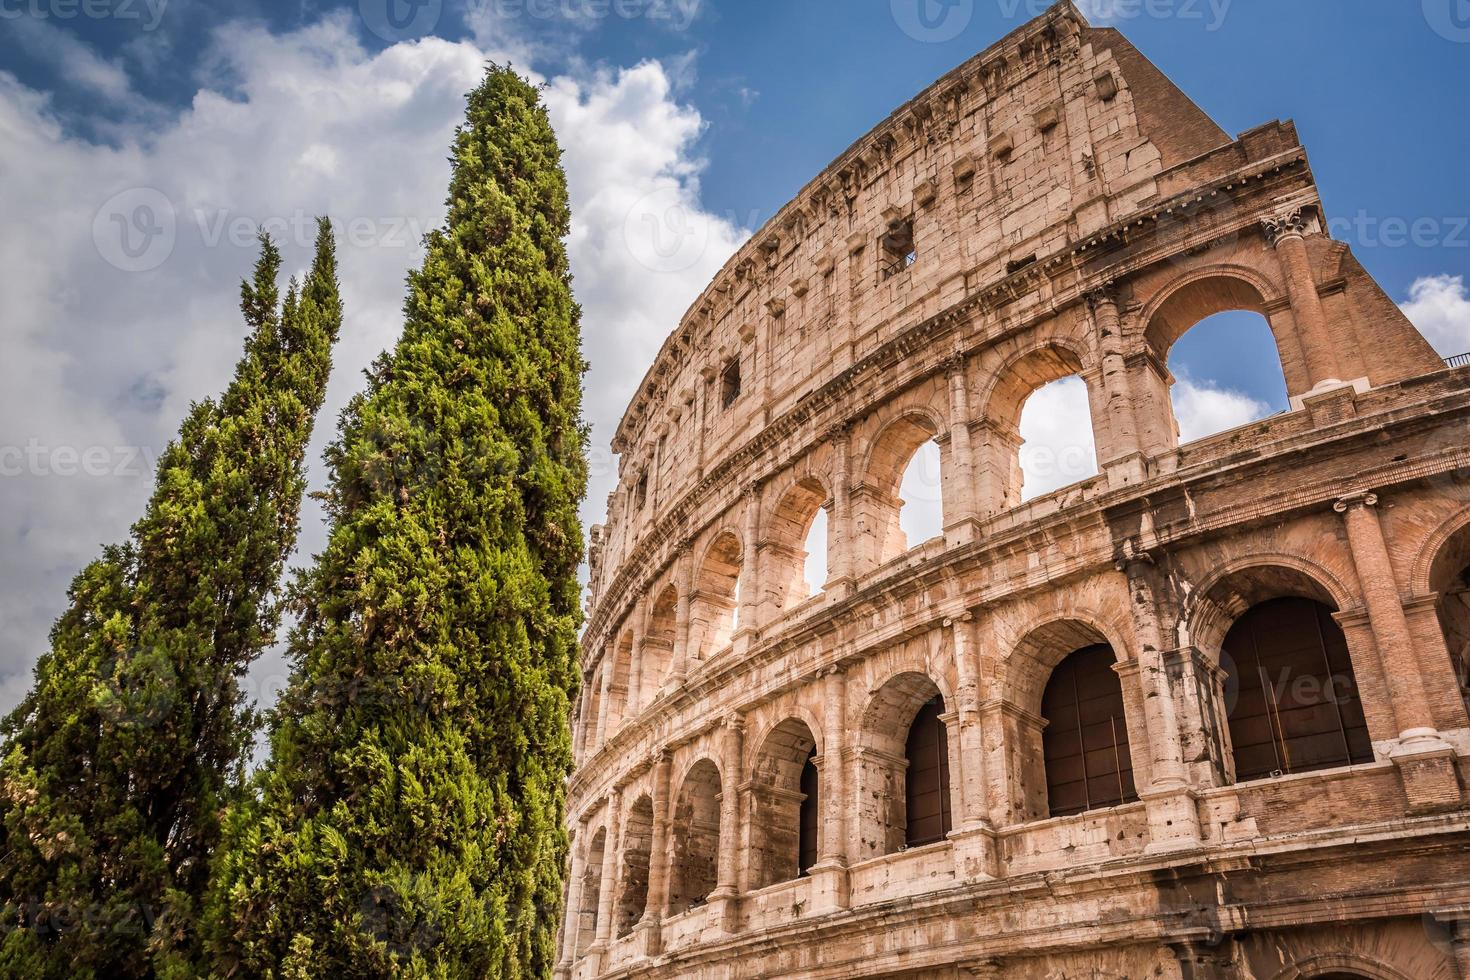 Beautiful Colosseum in Rome, Italy photo